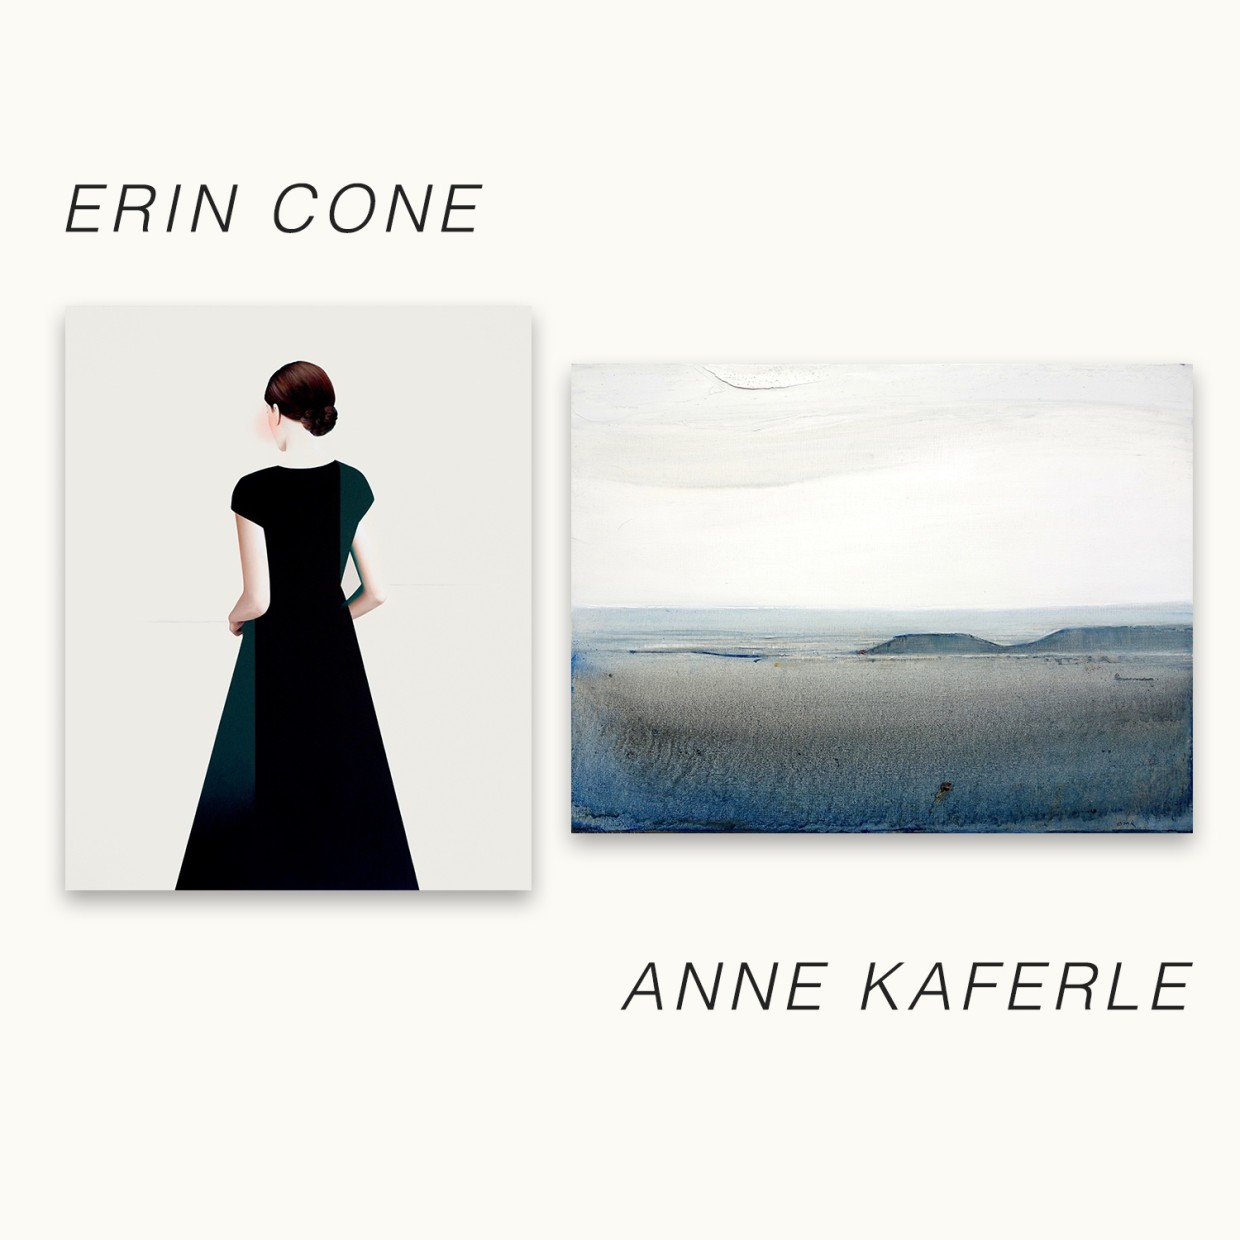 Erin Cone + Anne Kaferle Between the Physical + the Conceptual